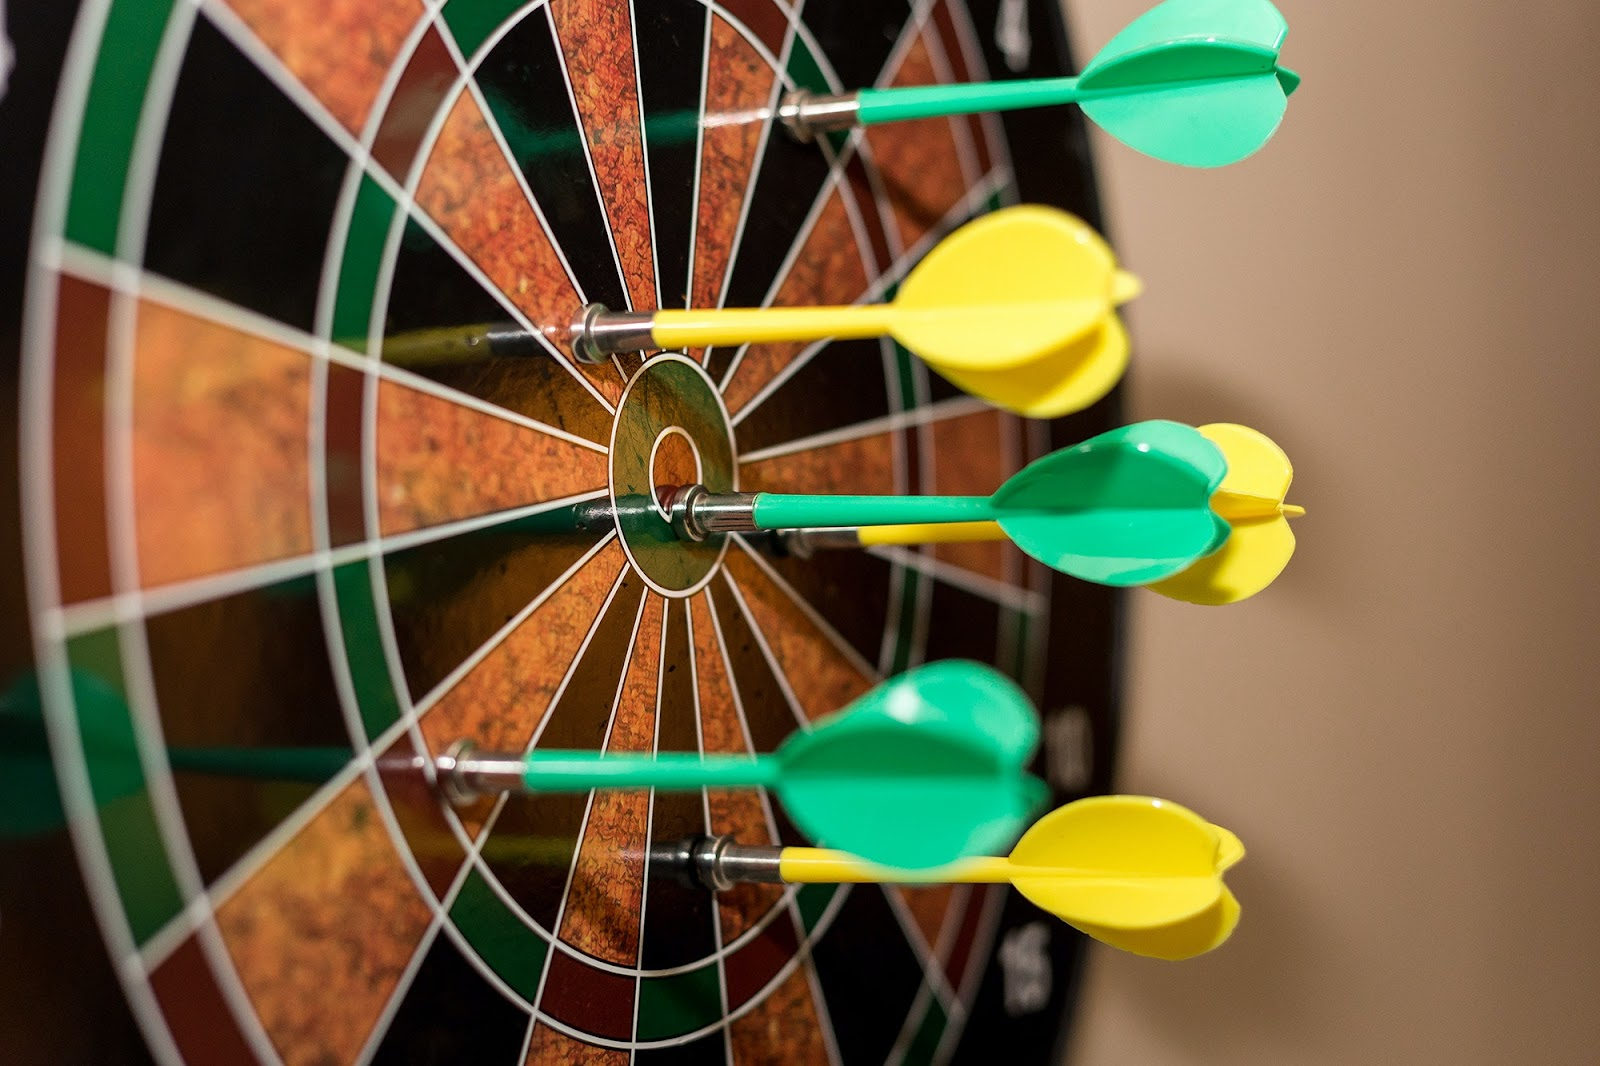 Darts cover a target in a wide spread.